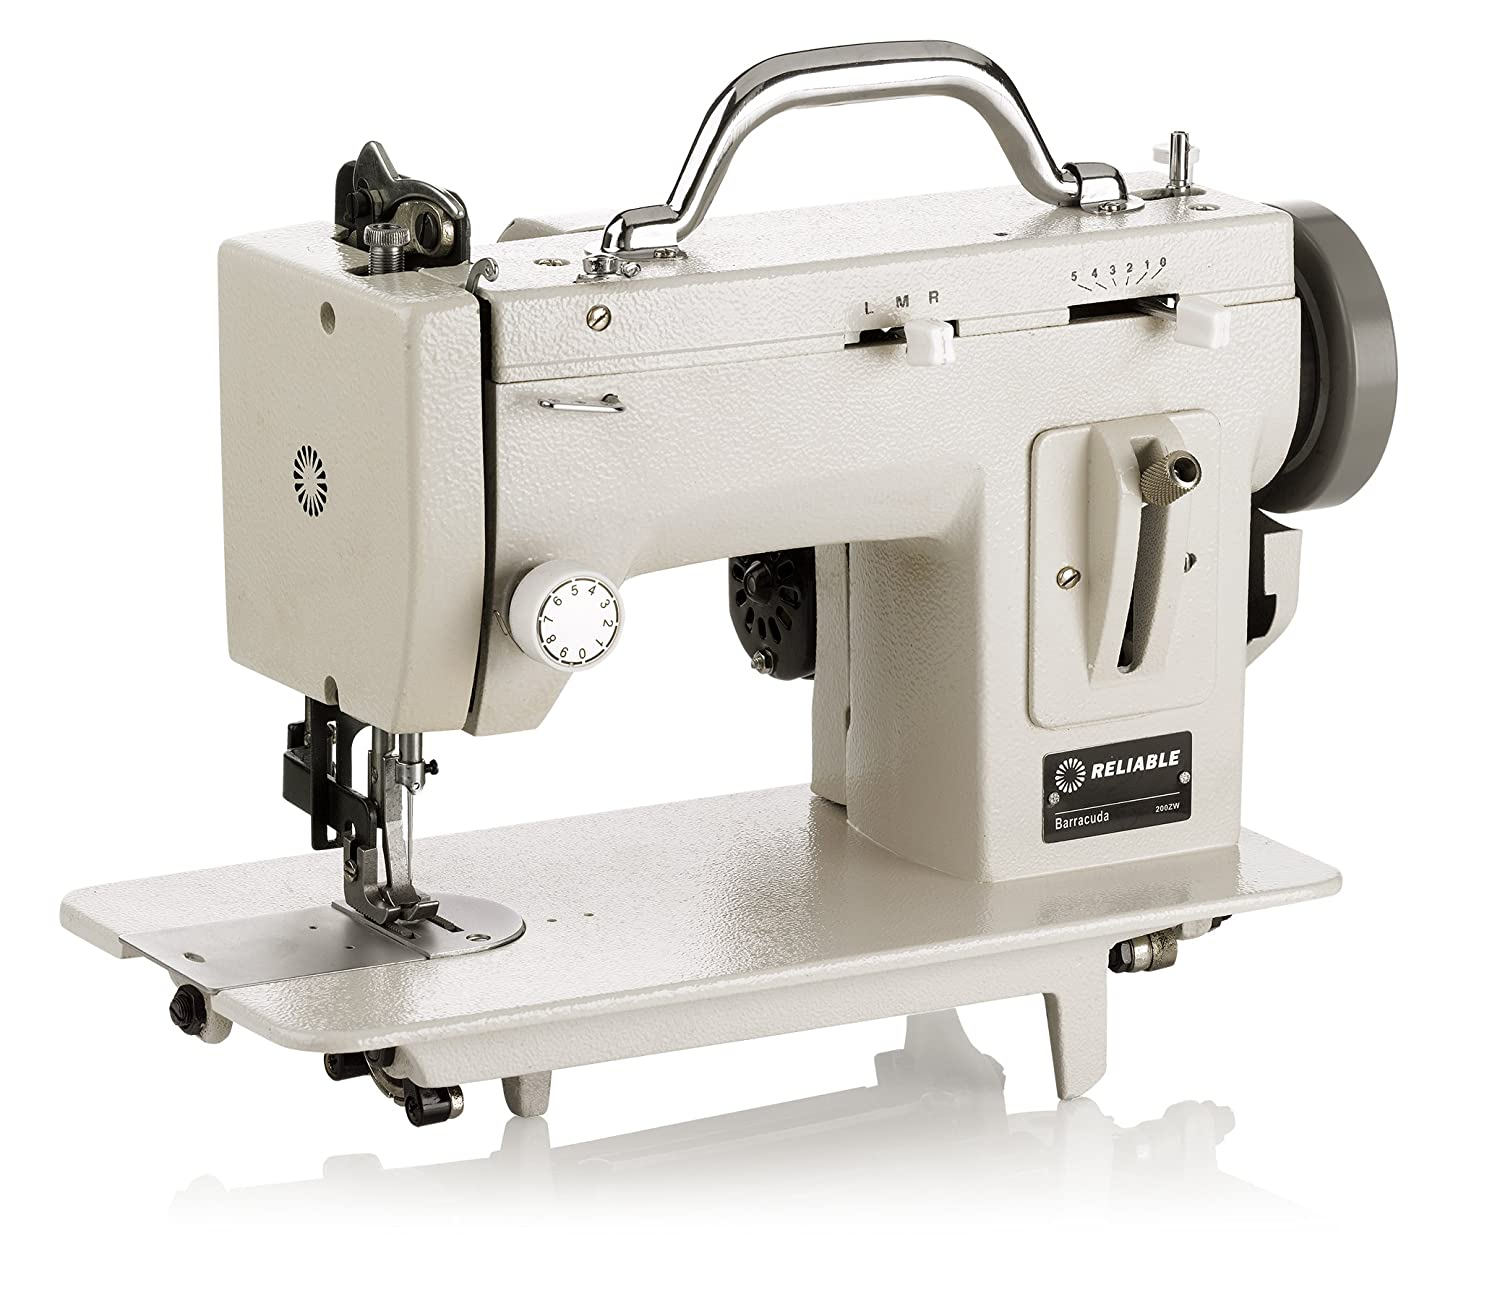 800 Stitches Per Minute Heavy- Duty Metal Construction Built in Speed Reducer Reverse Lever Mechanism Up to 4 Stitches Per Inch Reliable Barracuda 200ZW Zig-Zag Sewing Machine